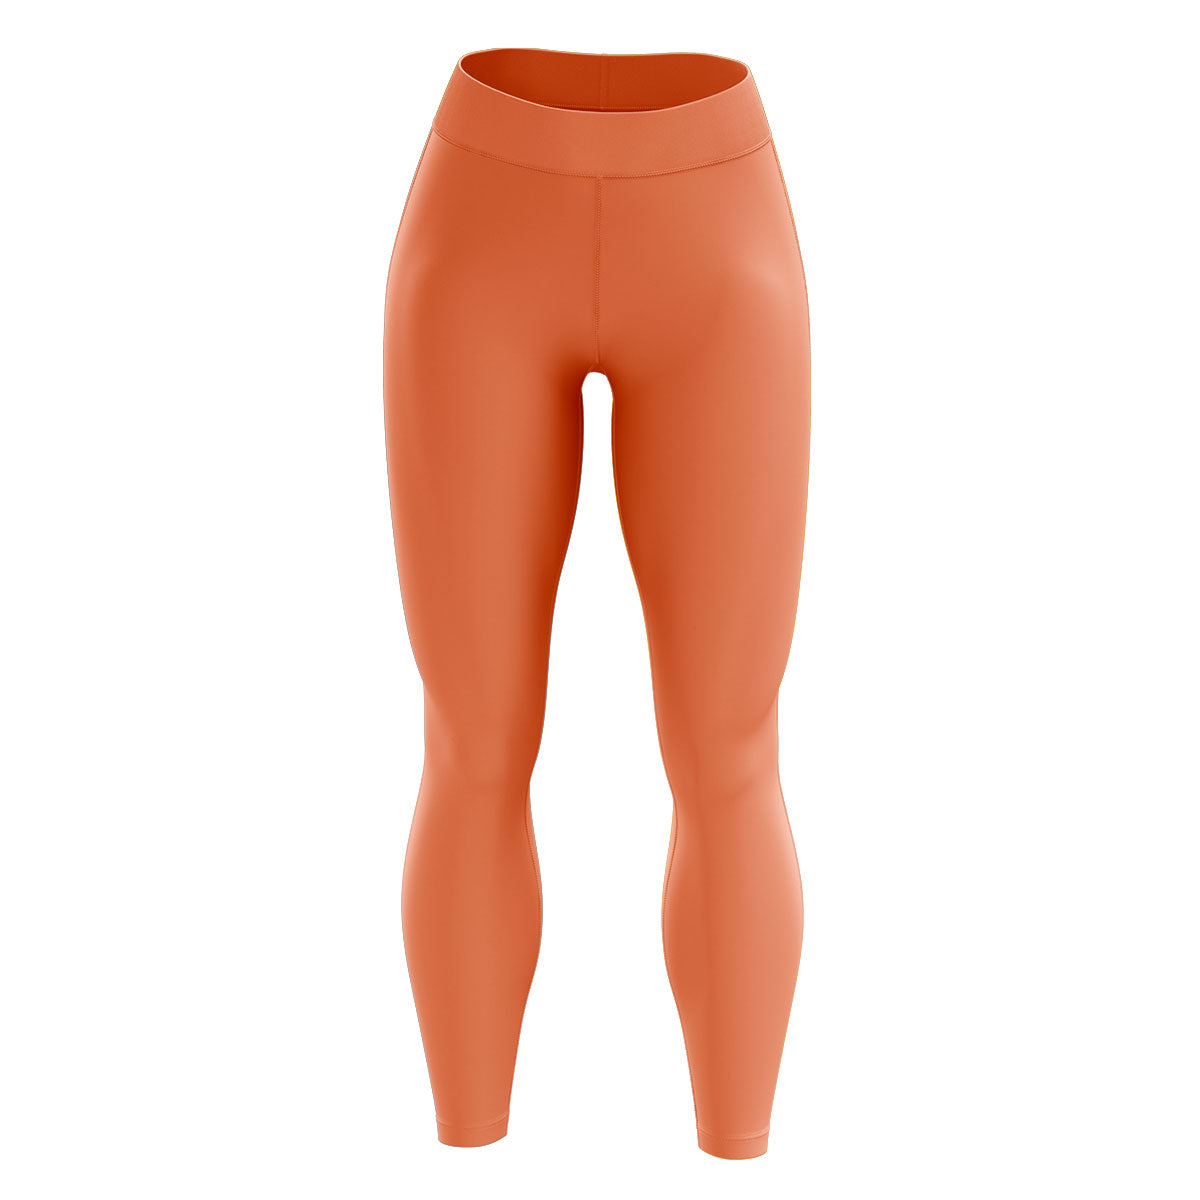 Coral High Waisted Yoga Leggings